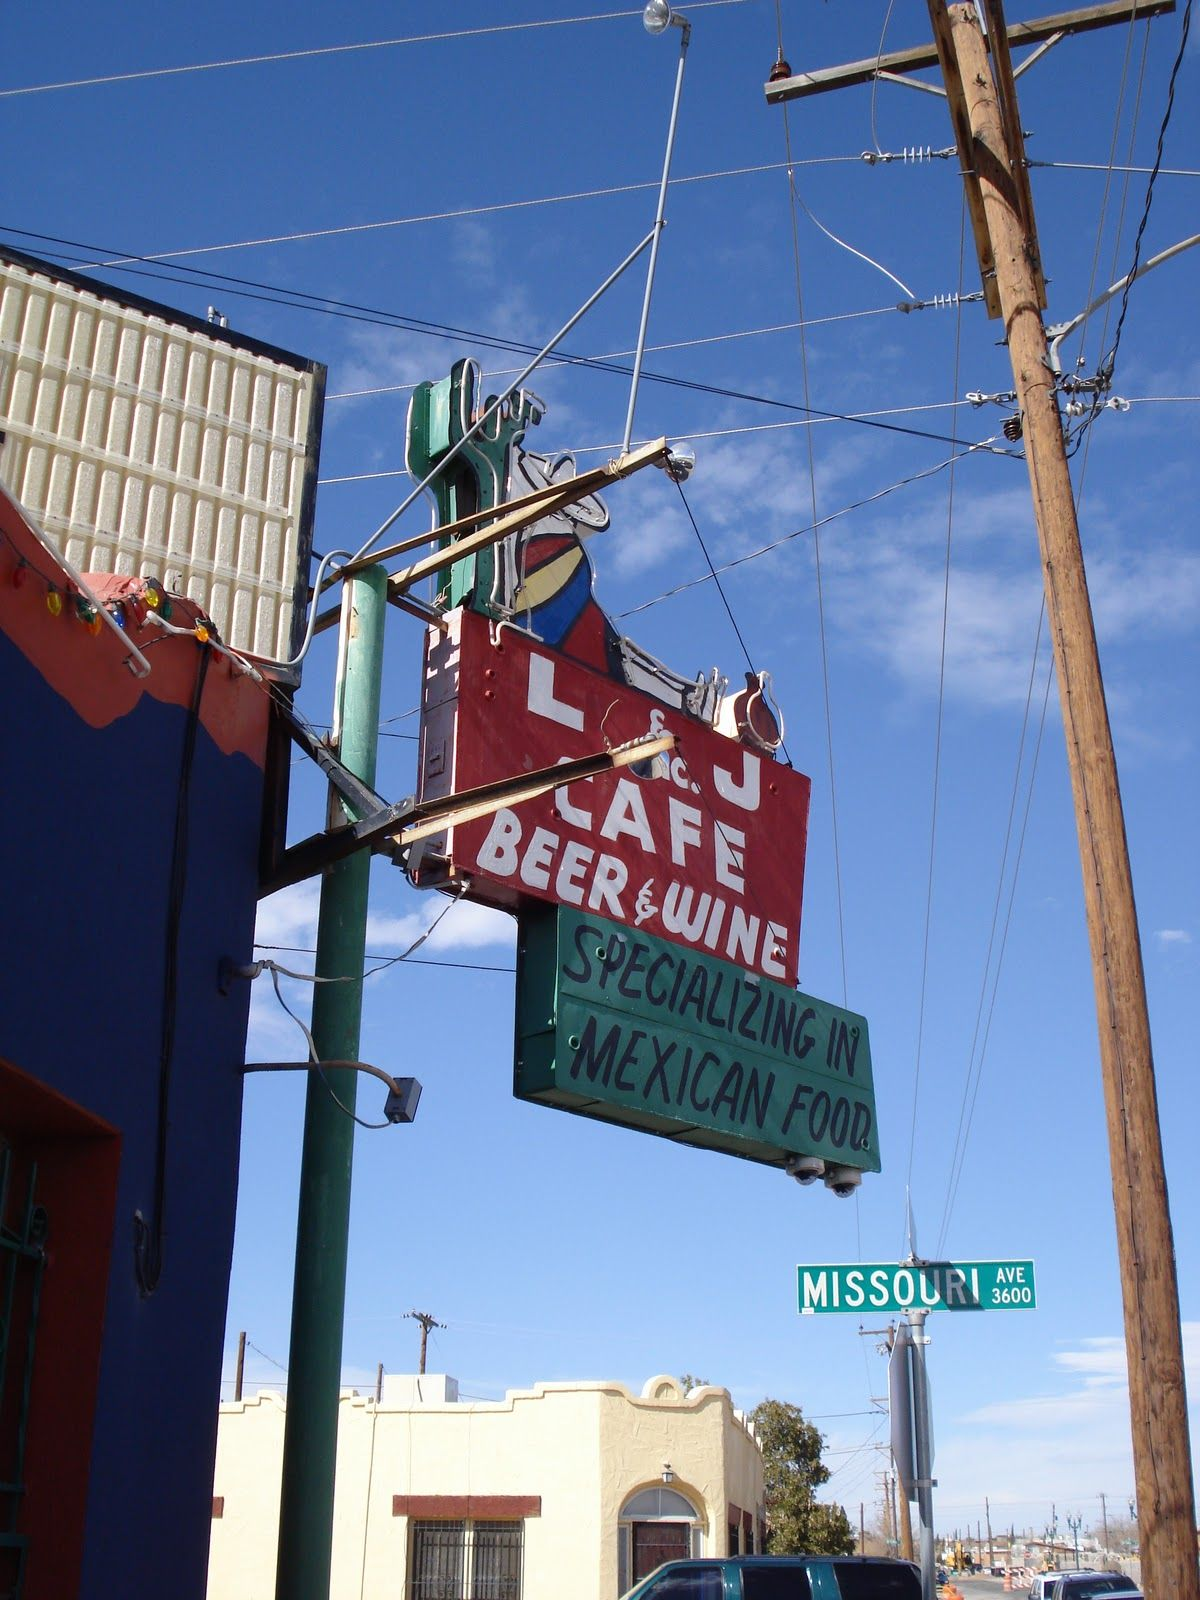 L And J Cafe The Old Place By The Graveyard Road Trip Across America El Paso Texas El Paso